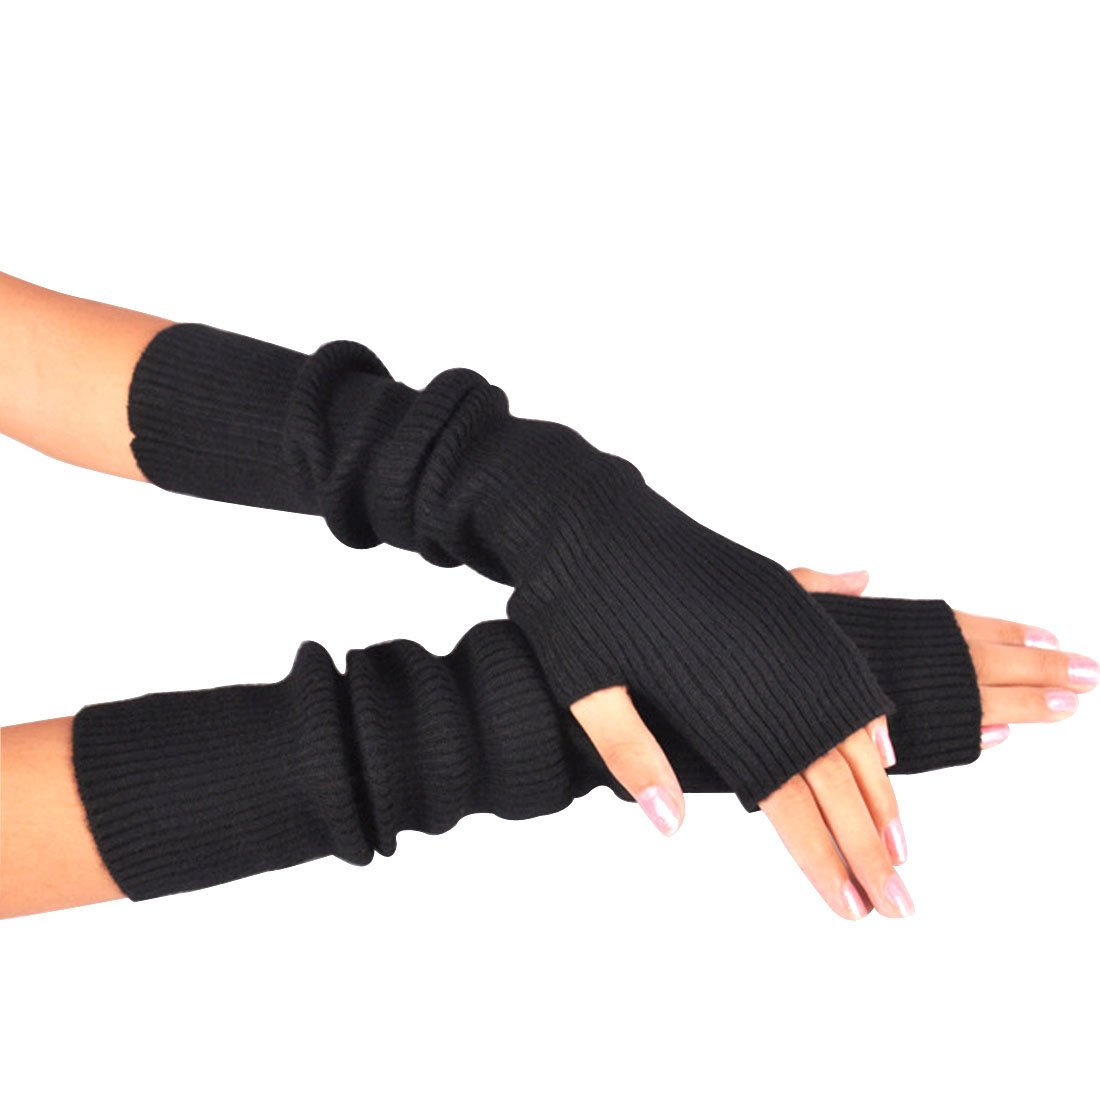 Novawo Women's Solid Wool Fingerless Arm Warmers Gloves with Thumb Hole, Black by Novawo (Image #2)